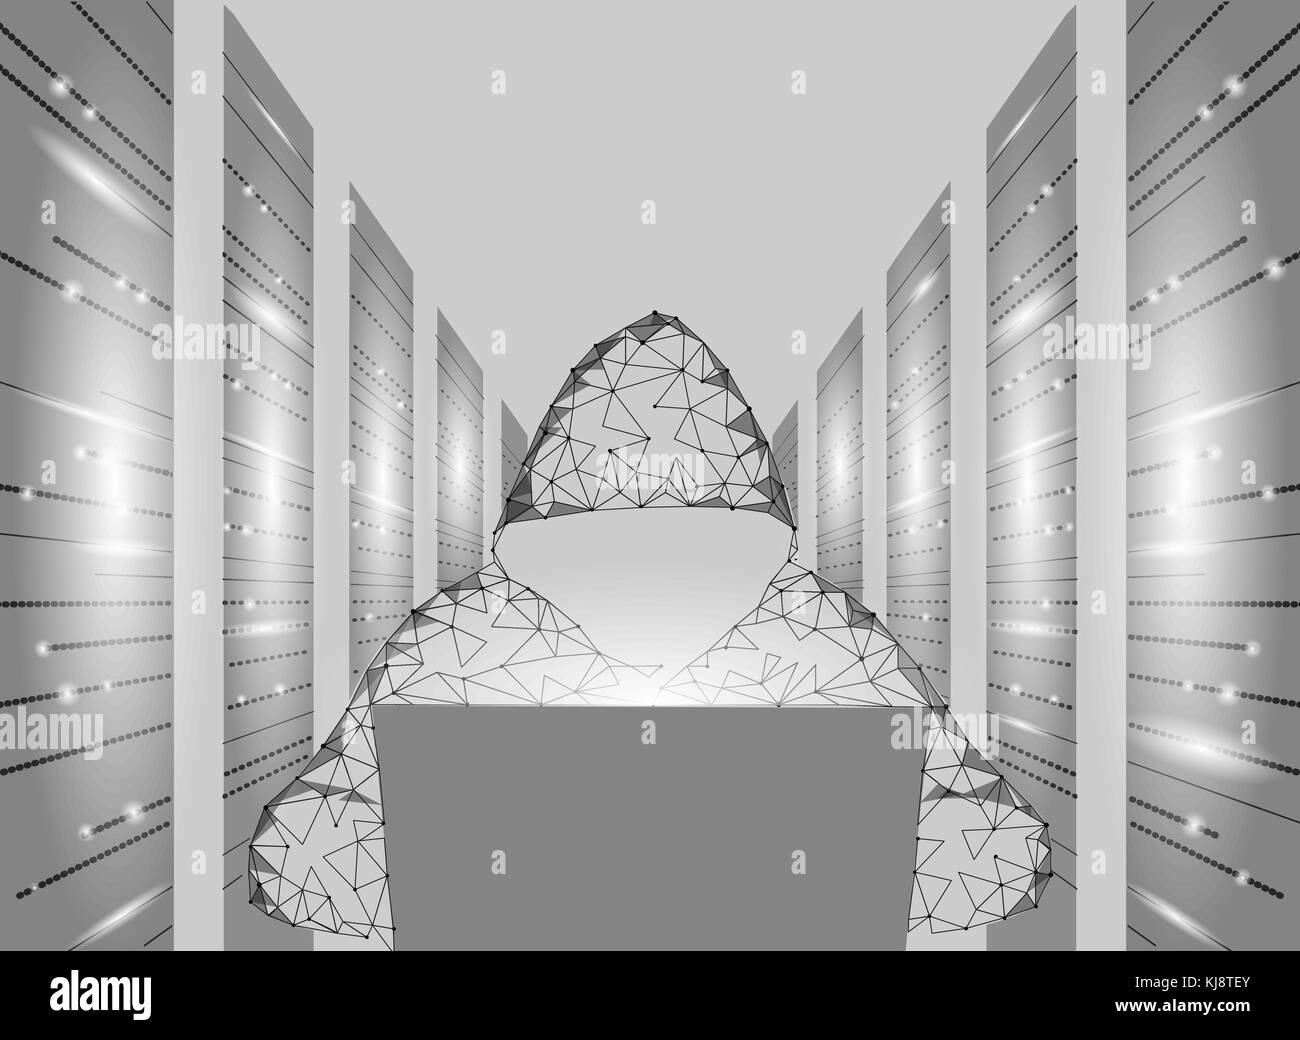 Internet security cyber attack business concept low poly. Anonymous hacker laptop computer gray white finance danger. - Stock Image